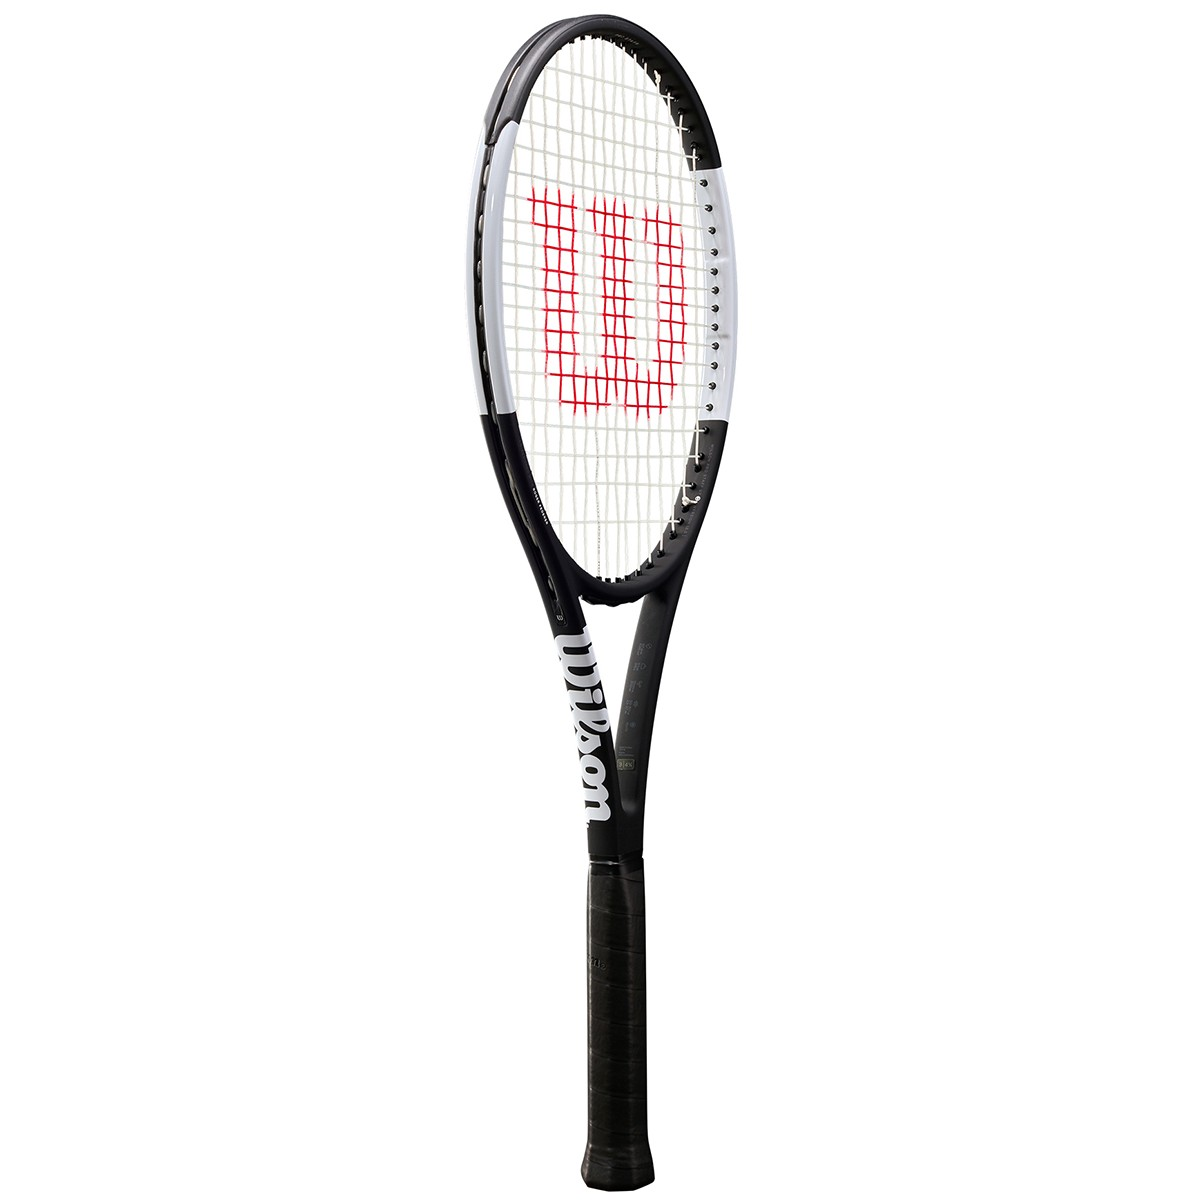 efb5887d3 RAQUETTE WILSON PRO STAFF 97 COUNTERVAIL (315 GR) (NEW)